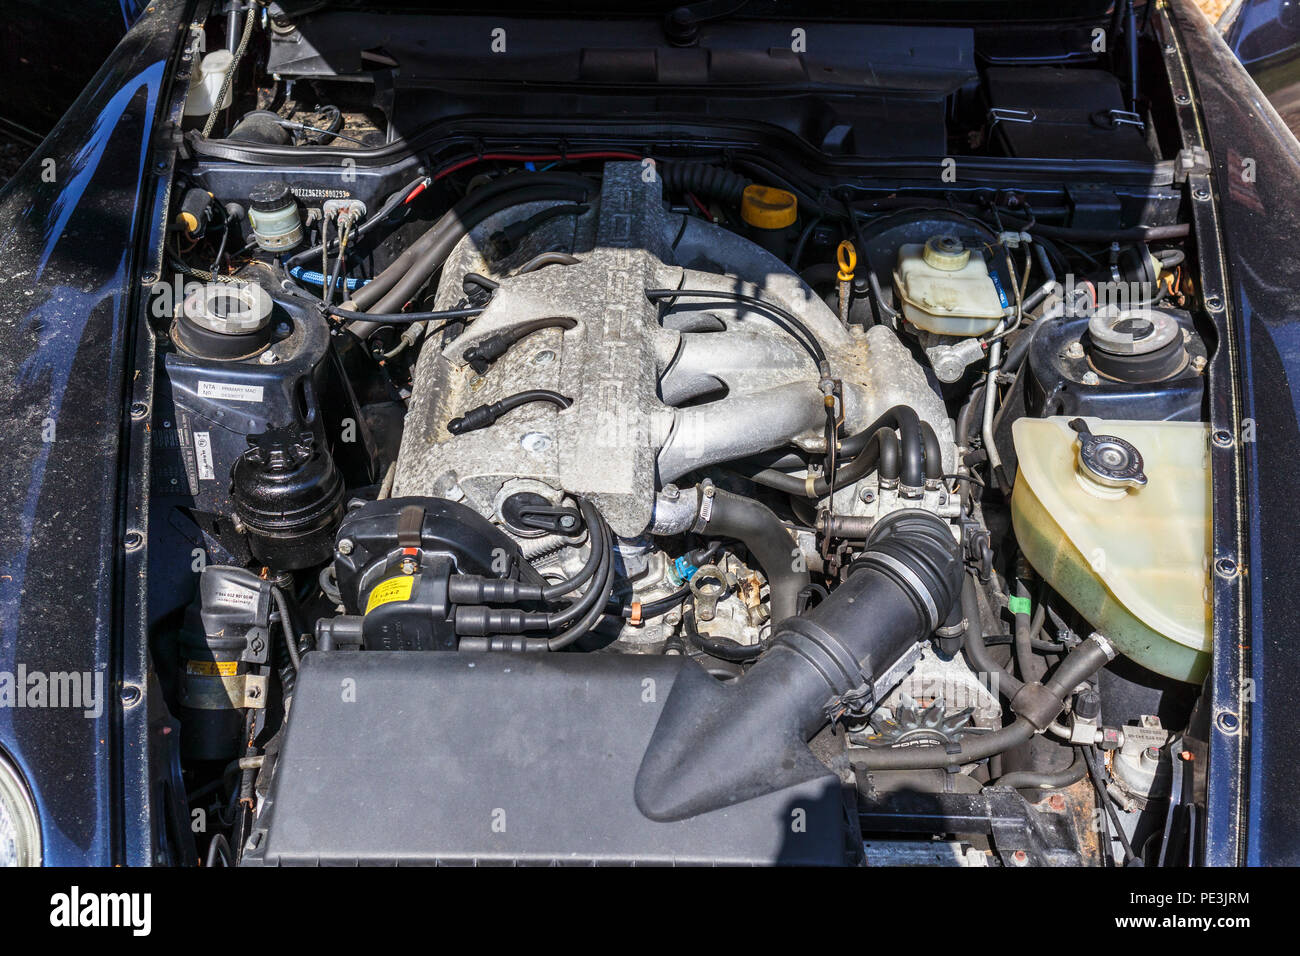 Open bonnet (hood) of a vintage Porsche 968 and the 3 litre straight-four engine (Front longitudinal inline four cylinder water cooled 16v VarioCam) Stock Photo